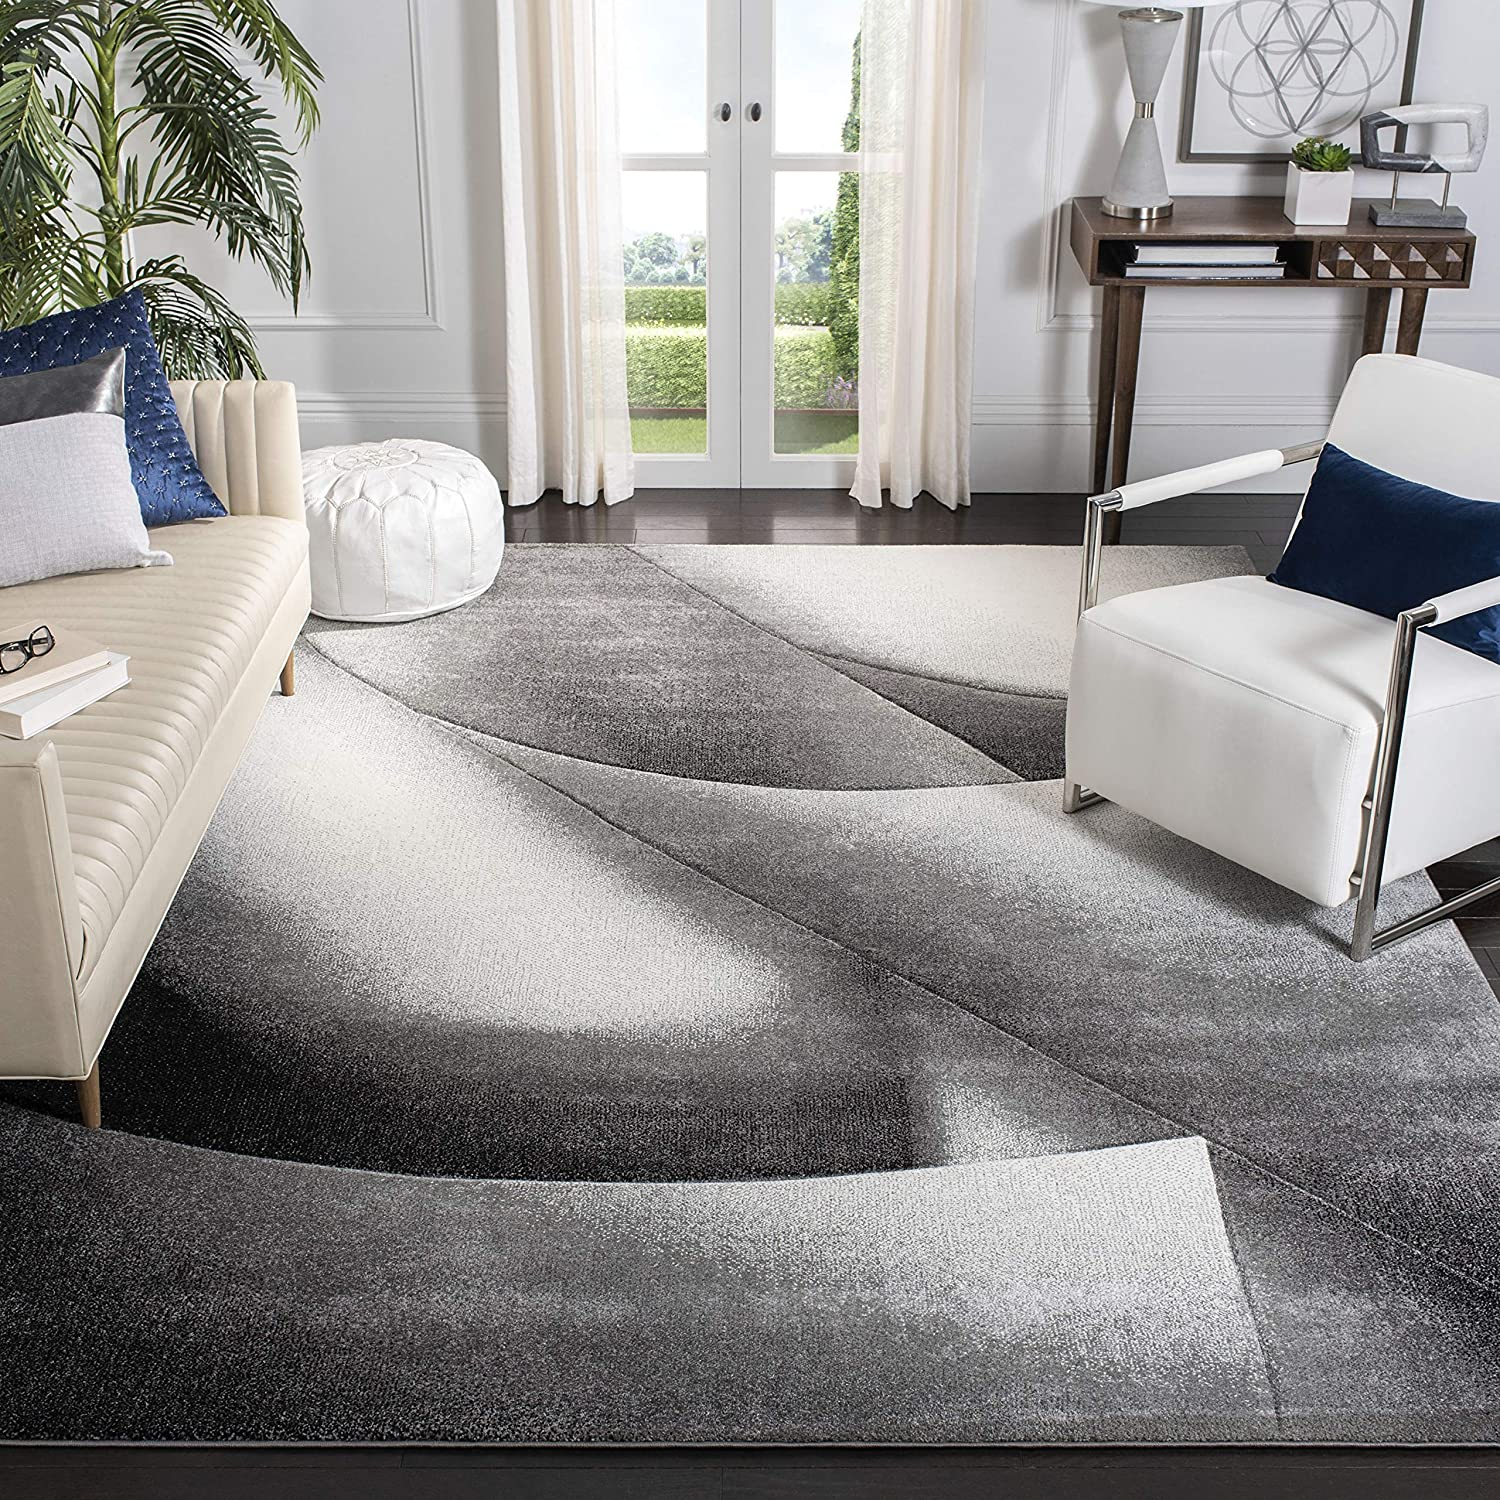 Safavieh Hollywood Collection Hlw716g Mid Century Modern Non Shedding Stain Resistant Living Room Bedroom Area Rug 8 X 10 Grey Dark Grey Furniture Decor